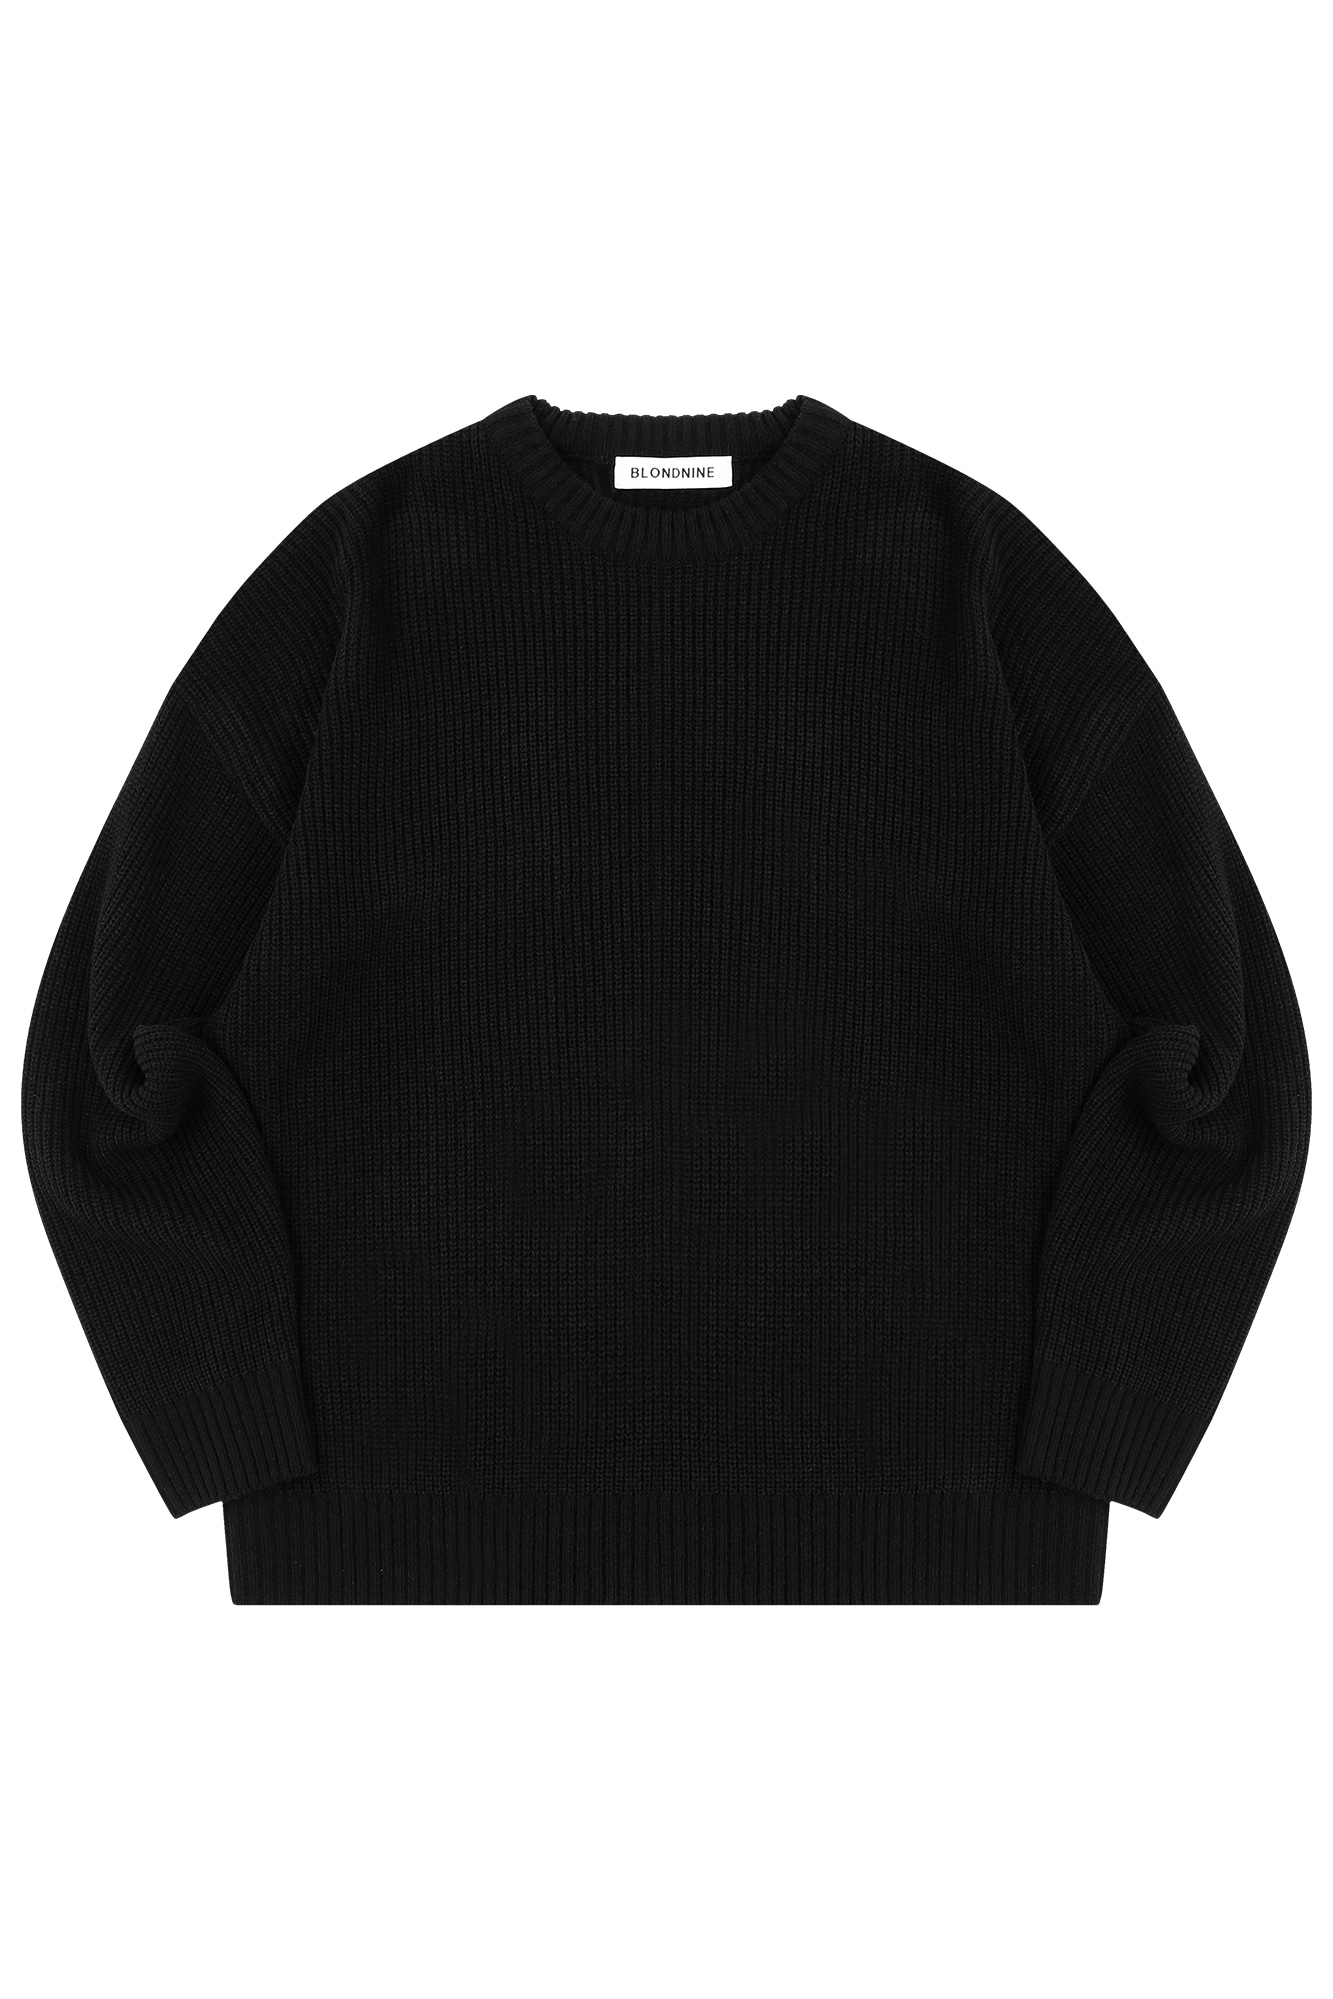 CREW NECK RIB KNIT SWEATER_BLACK